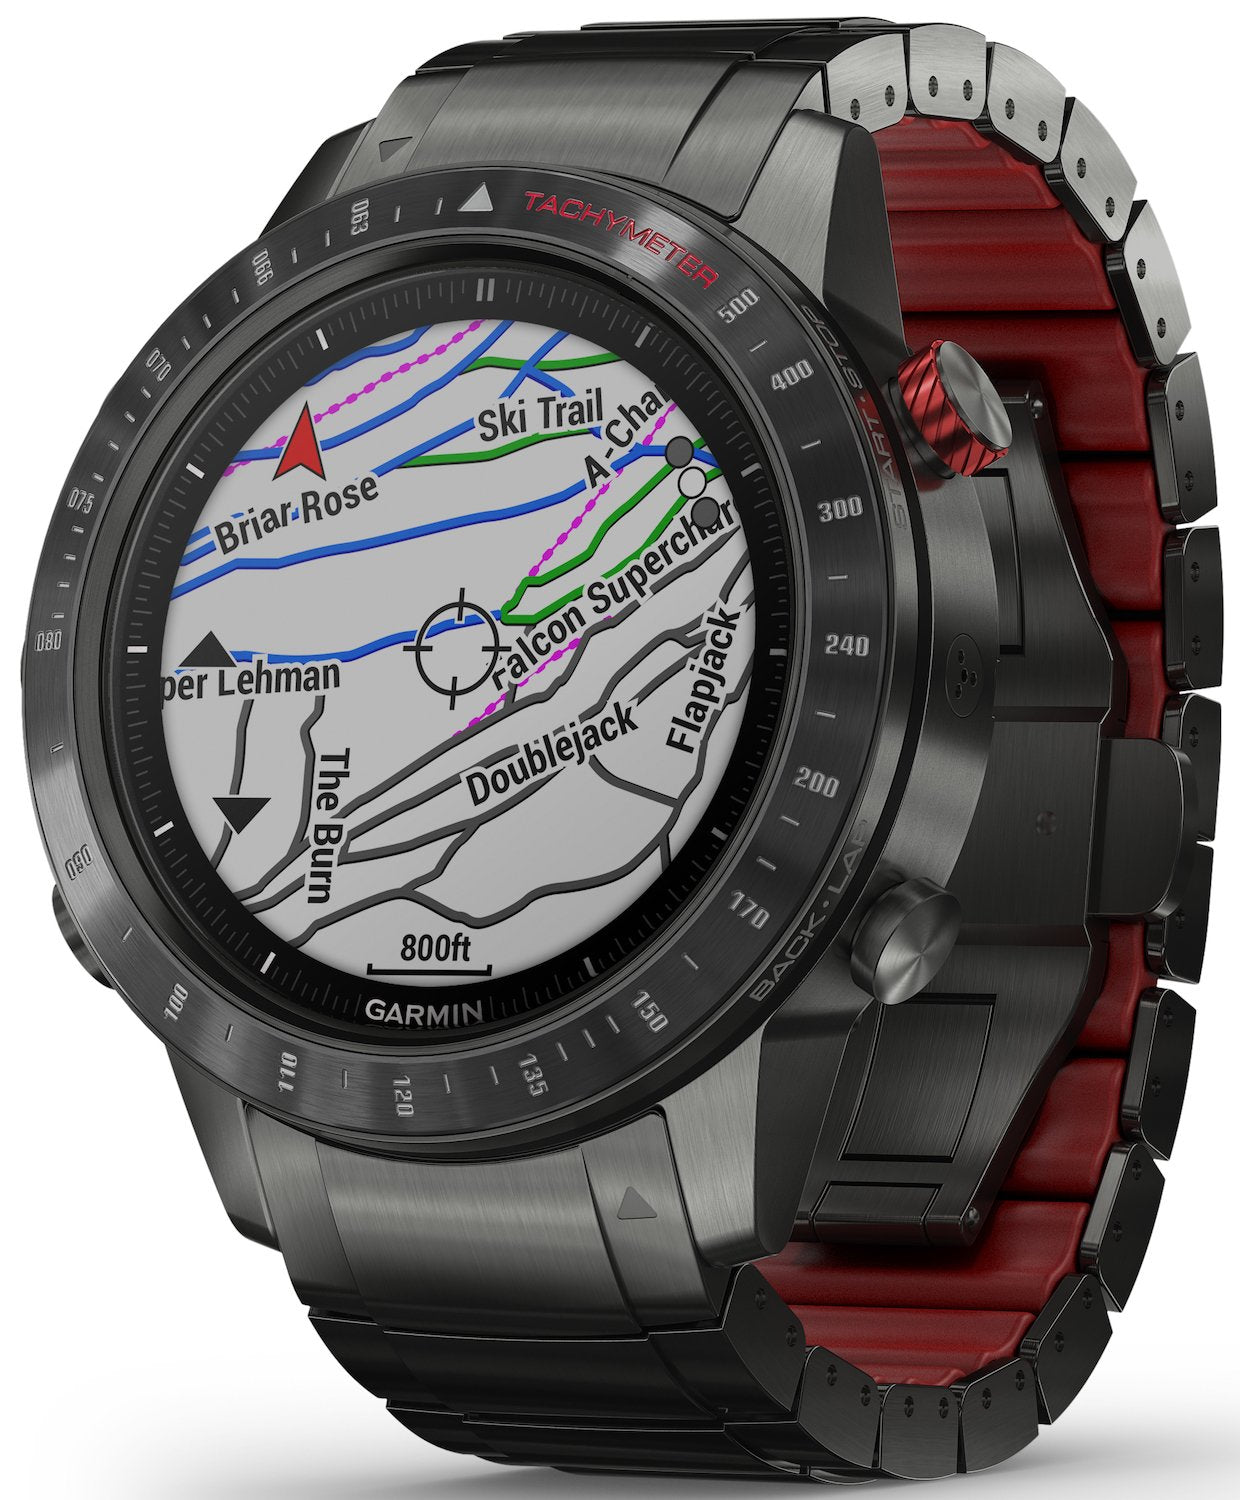 Garmin - MARQ Watch Driver GPS Smartwatch